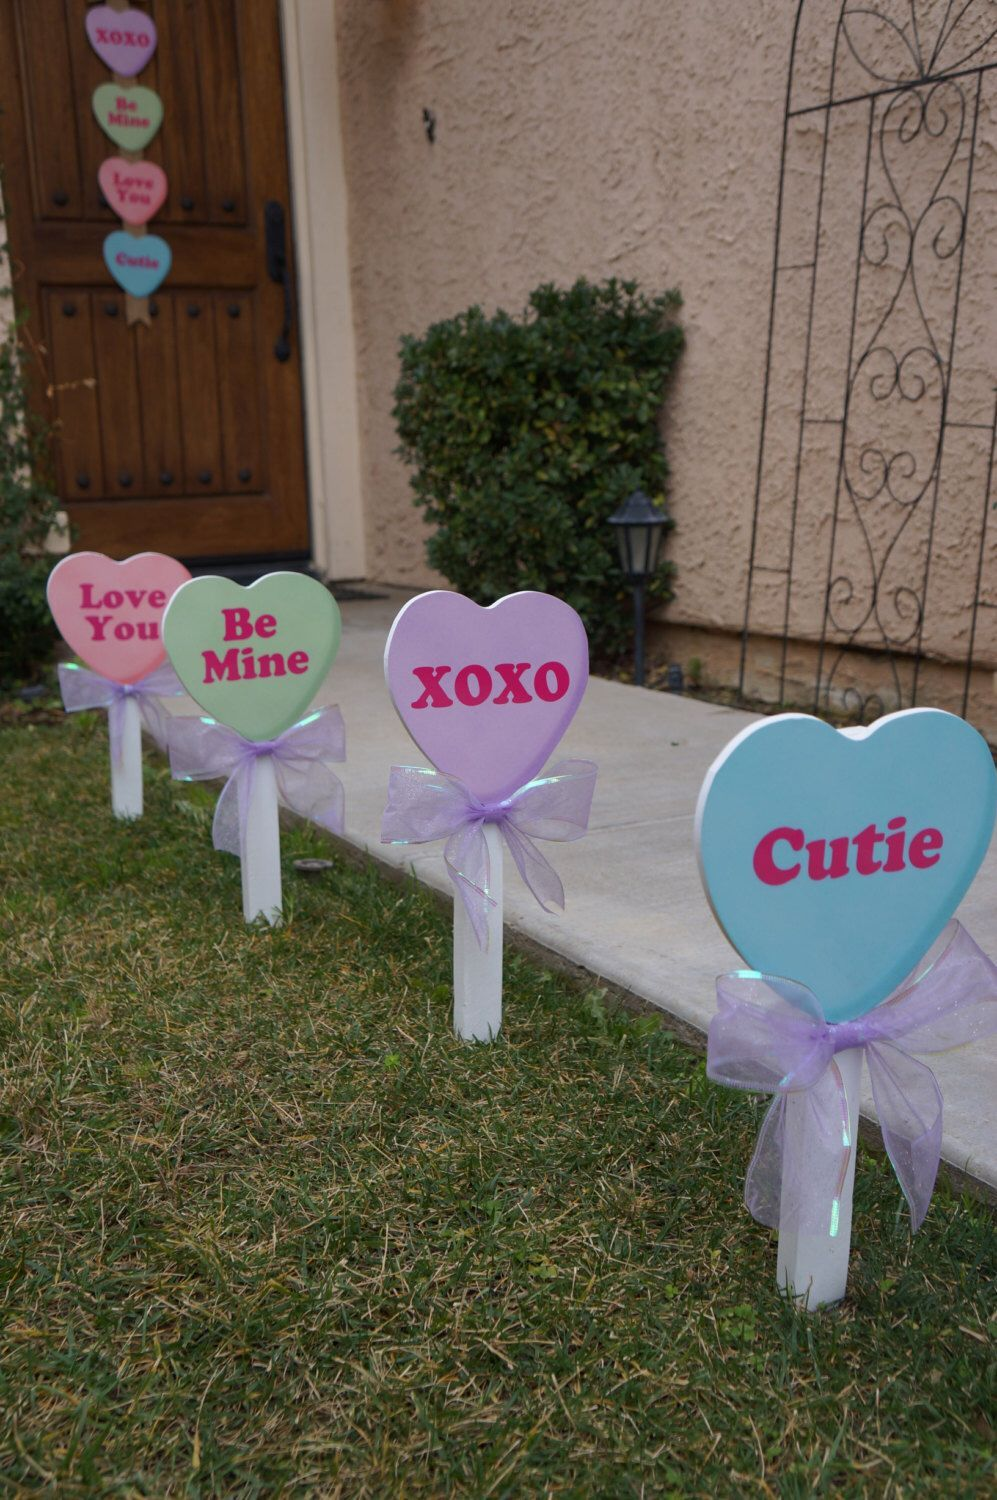 Majestic 24 Sweet And Simple Diy Valentine S Day Decorations Https Decorisme Co